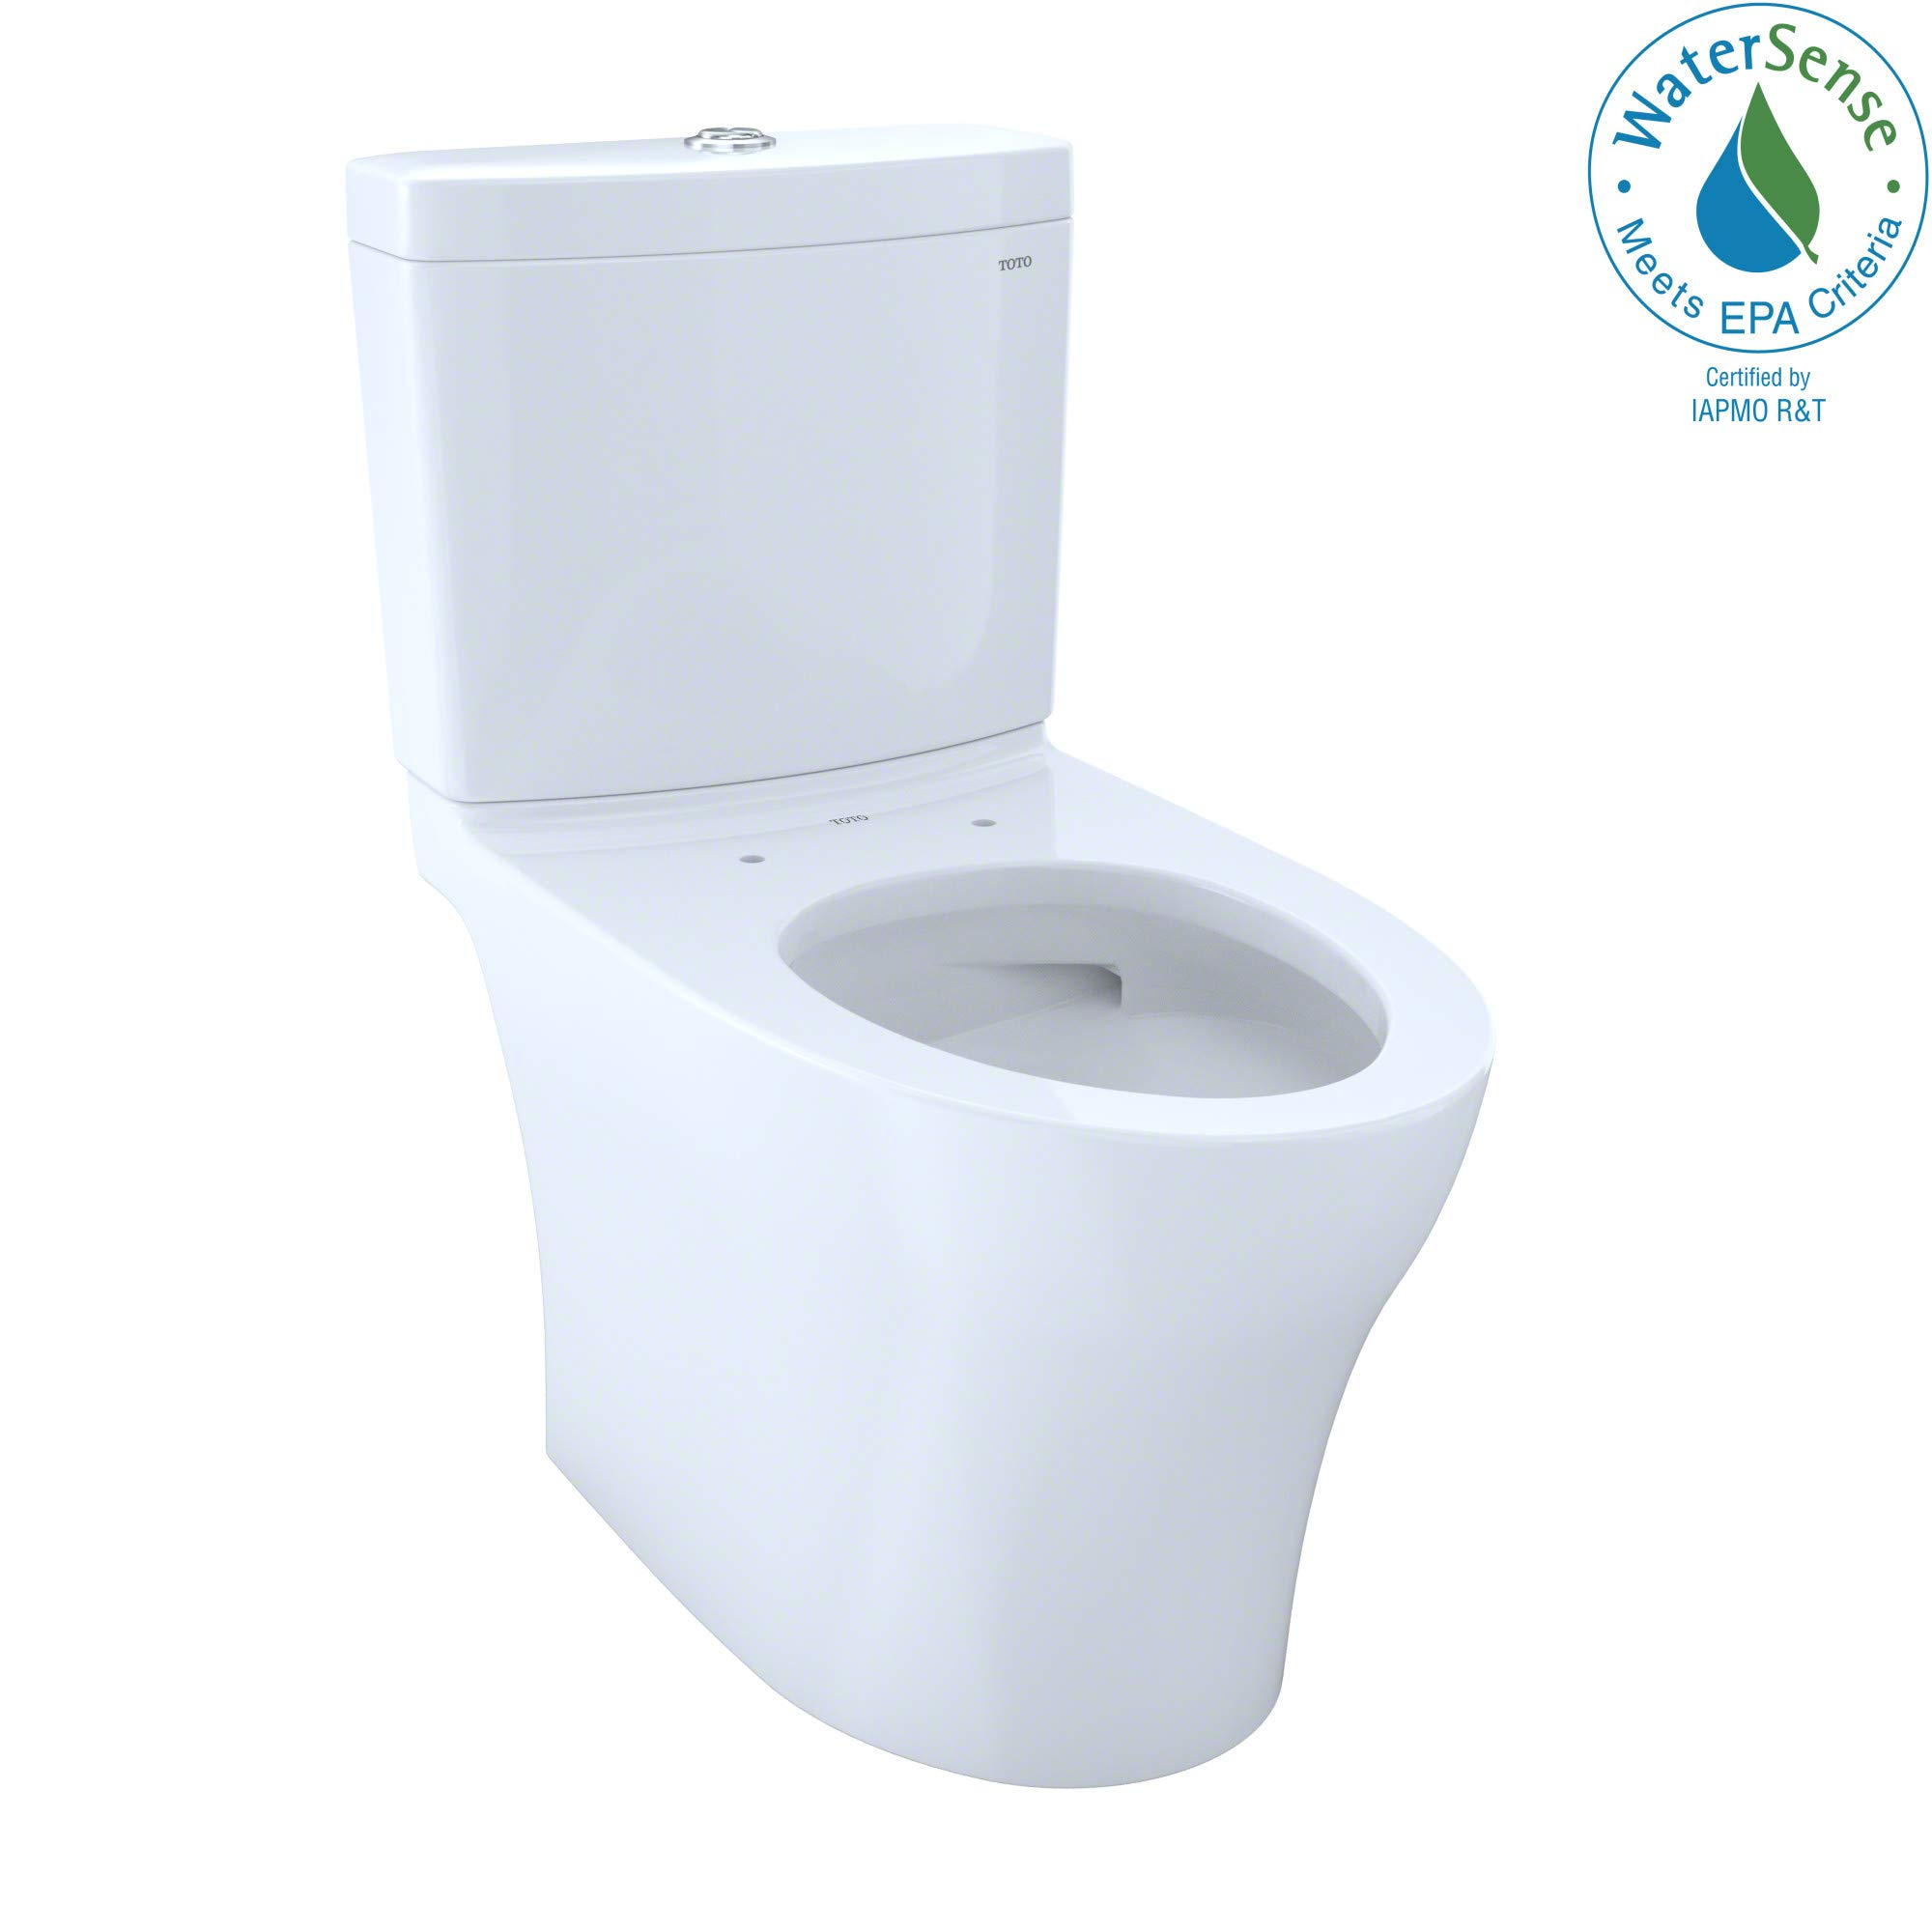 TOTO CST446CEMG#01 Aquia IV Elongated Dual Flush 1.28 and 0.8 GPF Skirted CEFIONTECT two-piece-toilets, Cotton White by TOTO